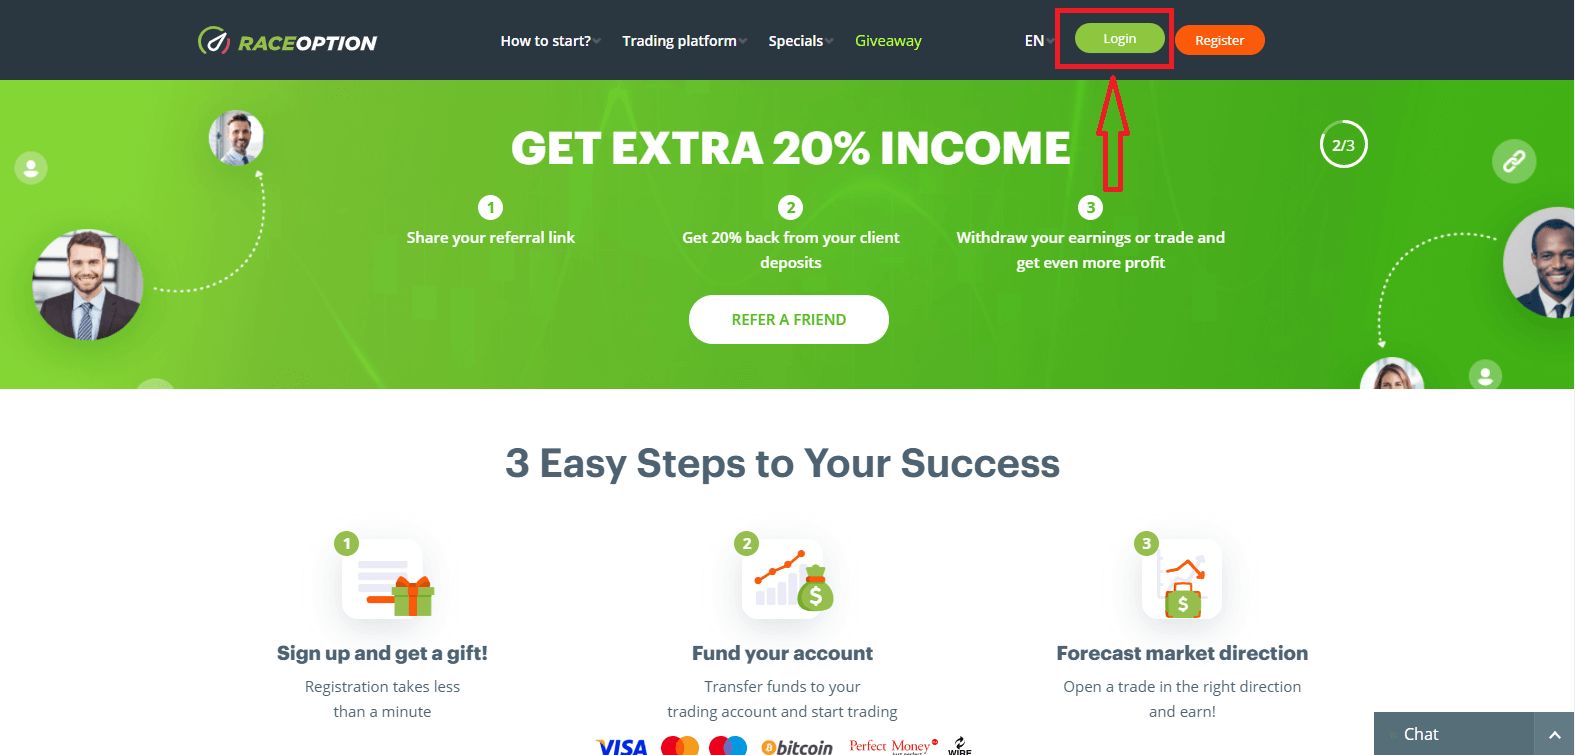 How to Login to Raceoption? Forgot my Password